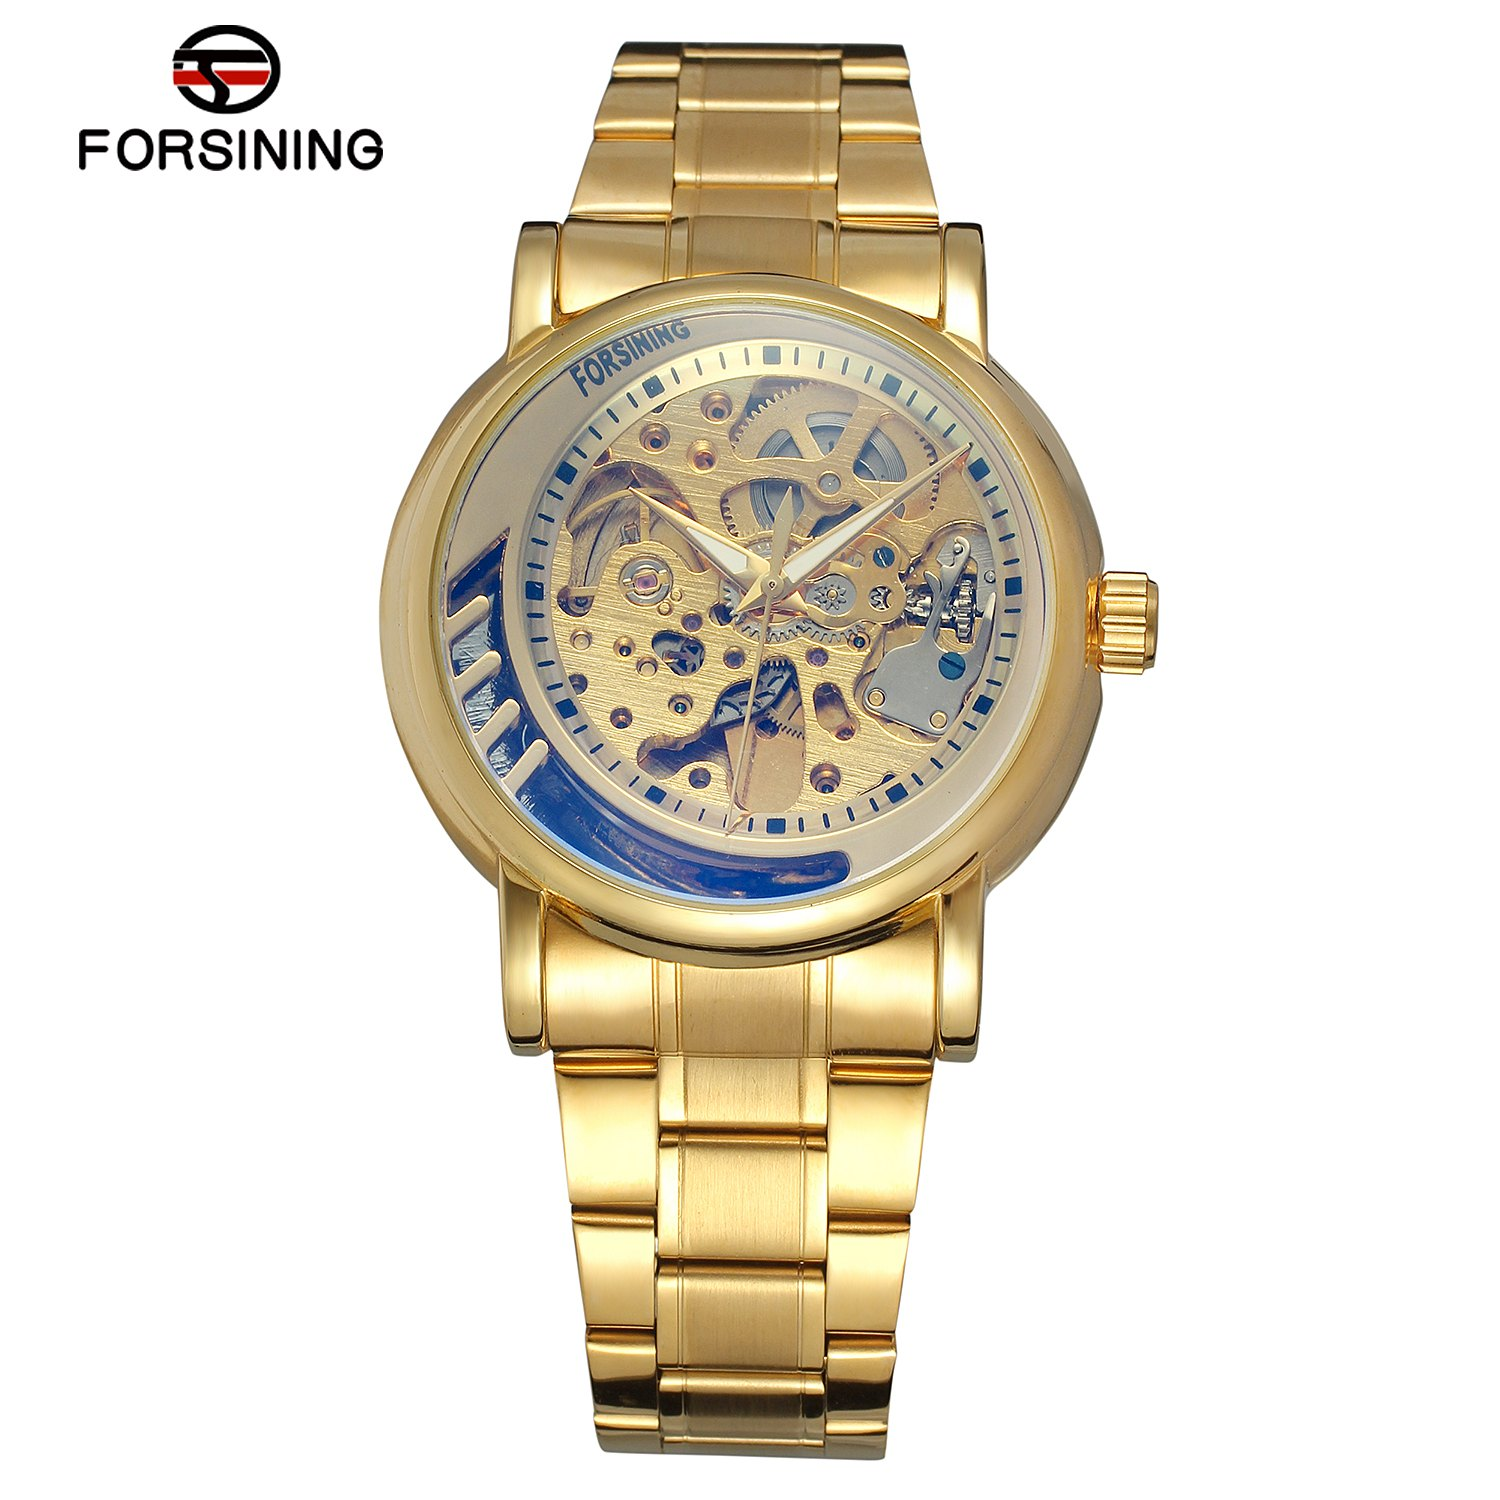 FORSINING Top Luxury Men Mechanical Watches Automatic Skeleton Stainless Steel Gold Mens Wrist Watch Relogio Masculino otoky unique luxury mens steampunk skeleton stainless steel automatic mechanical wrist watch f30